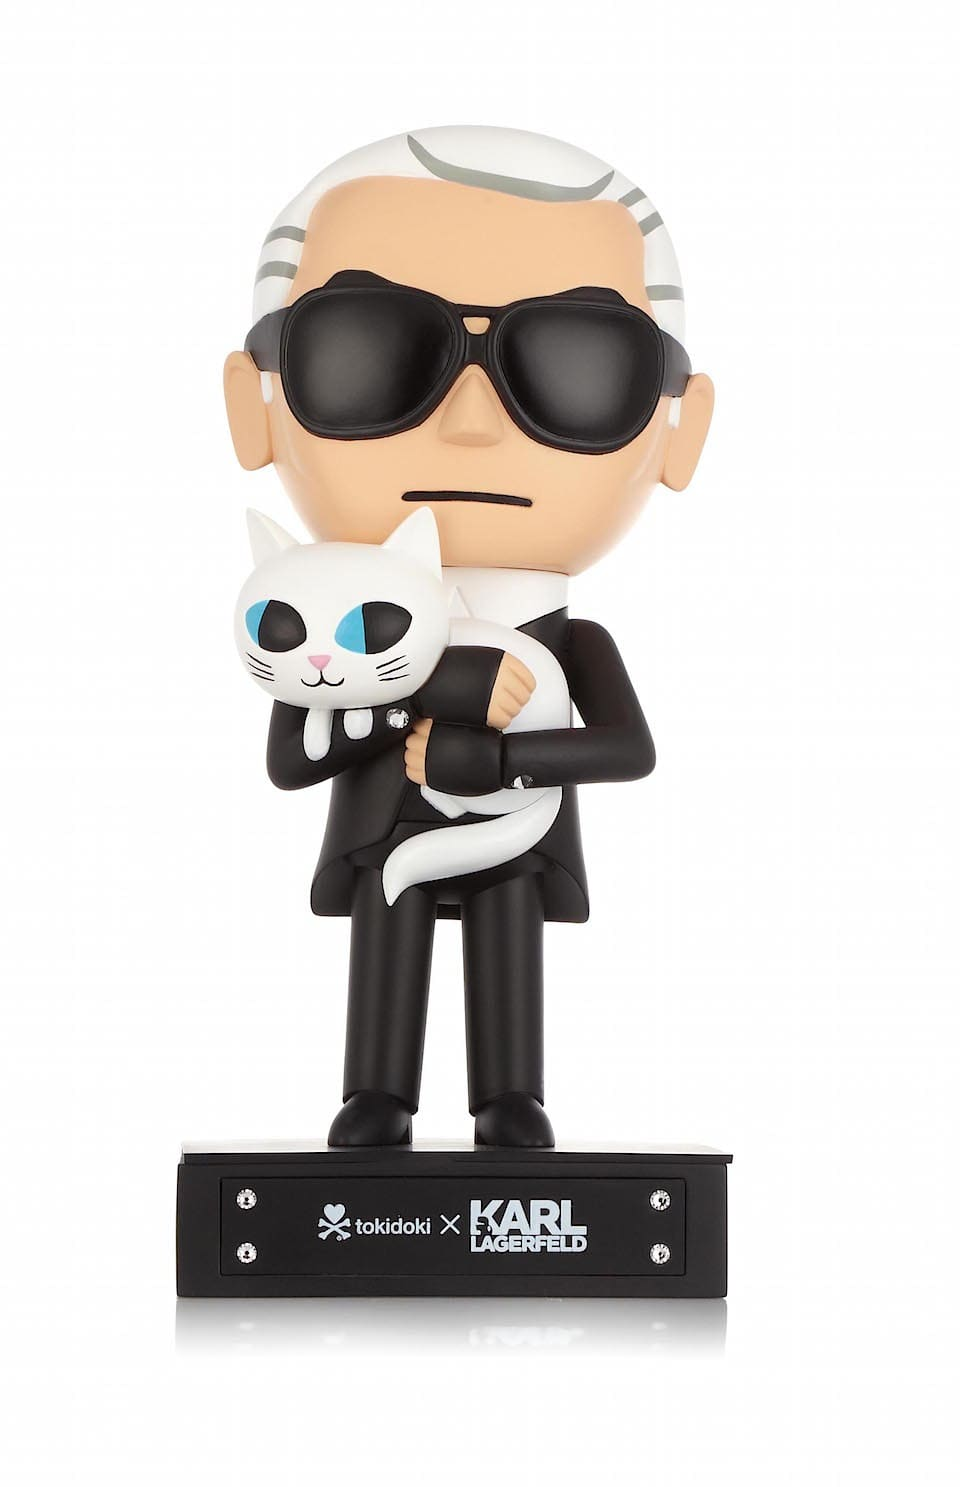 TOKIDOKI X KARL LAGERFELD, zdroj: karl-press.com